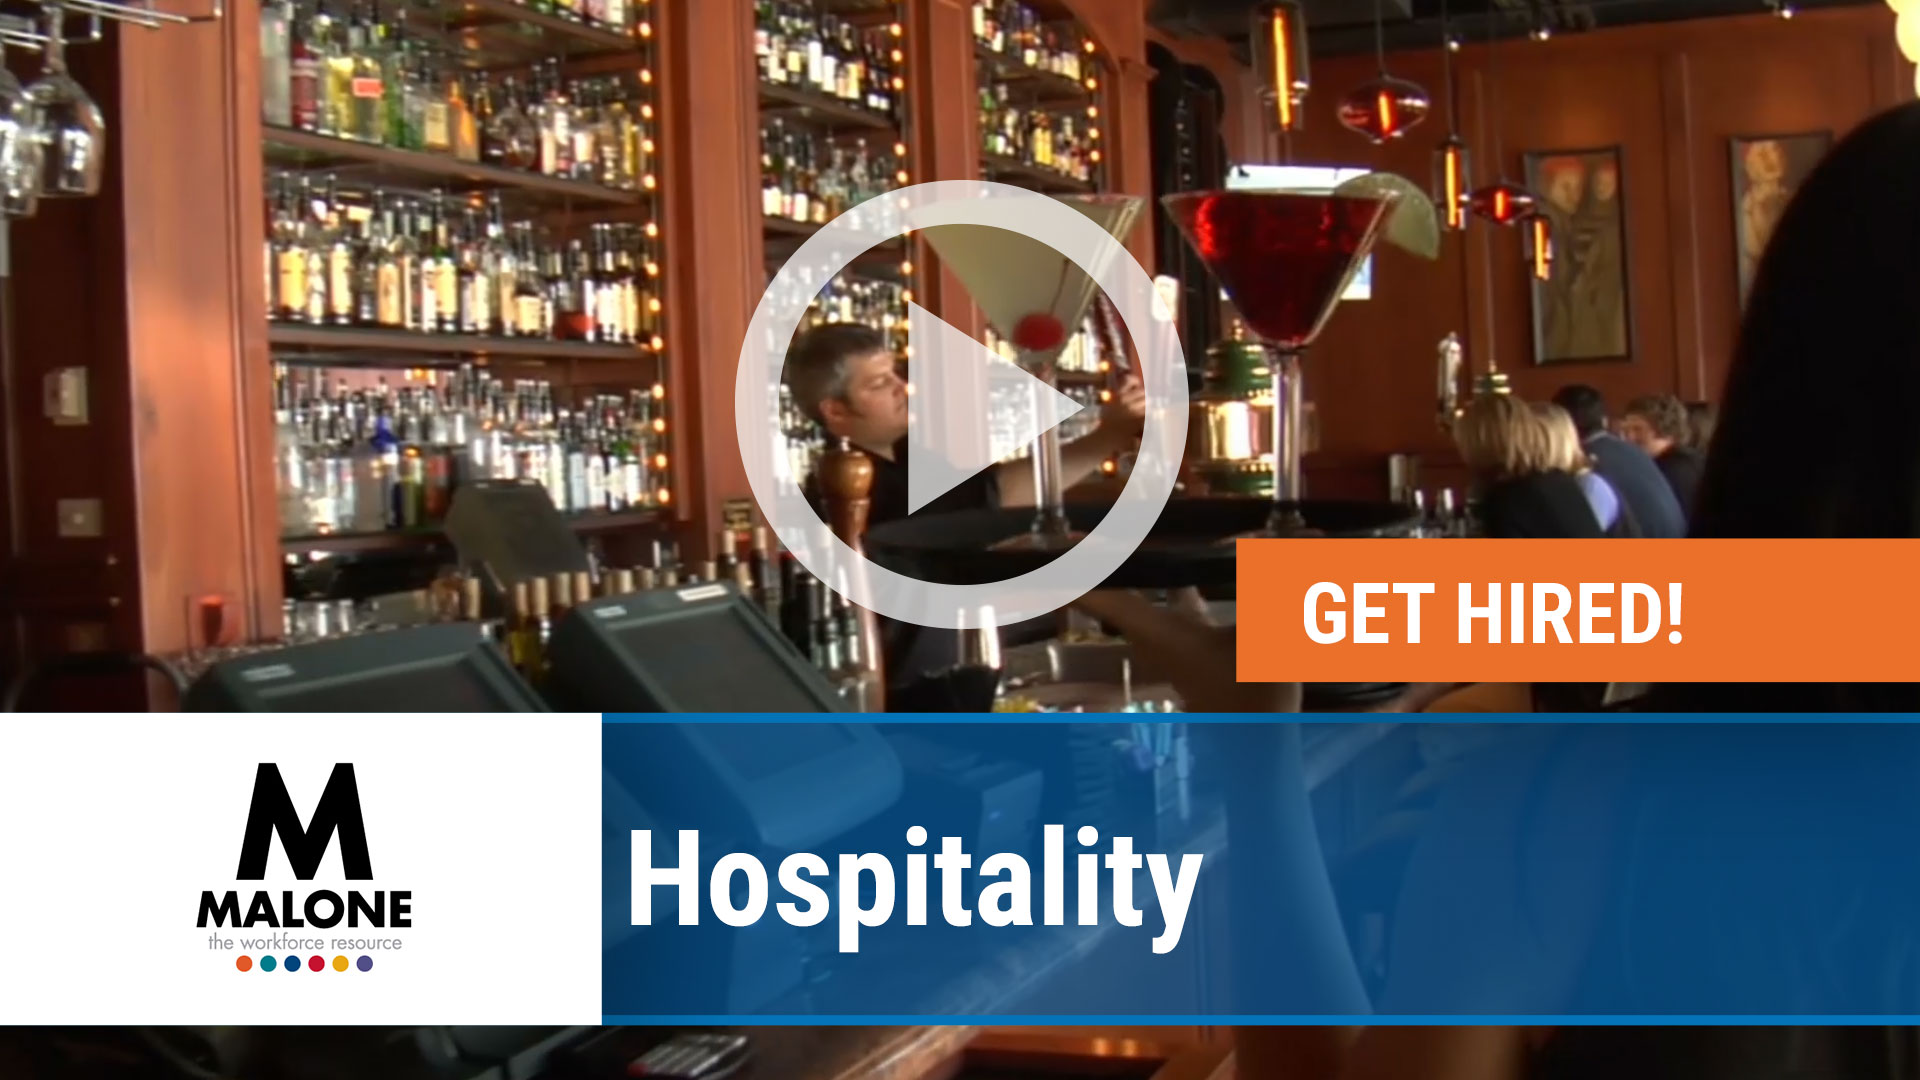 Watch our careers video for available job opening Hospitality Jobs in Louisville, Kentucky